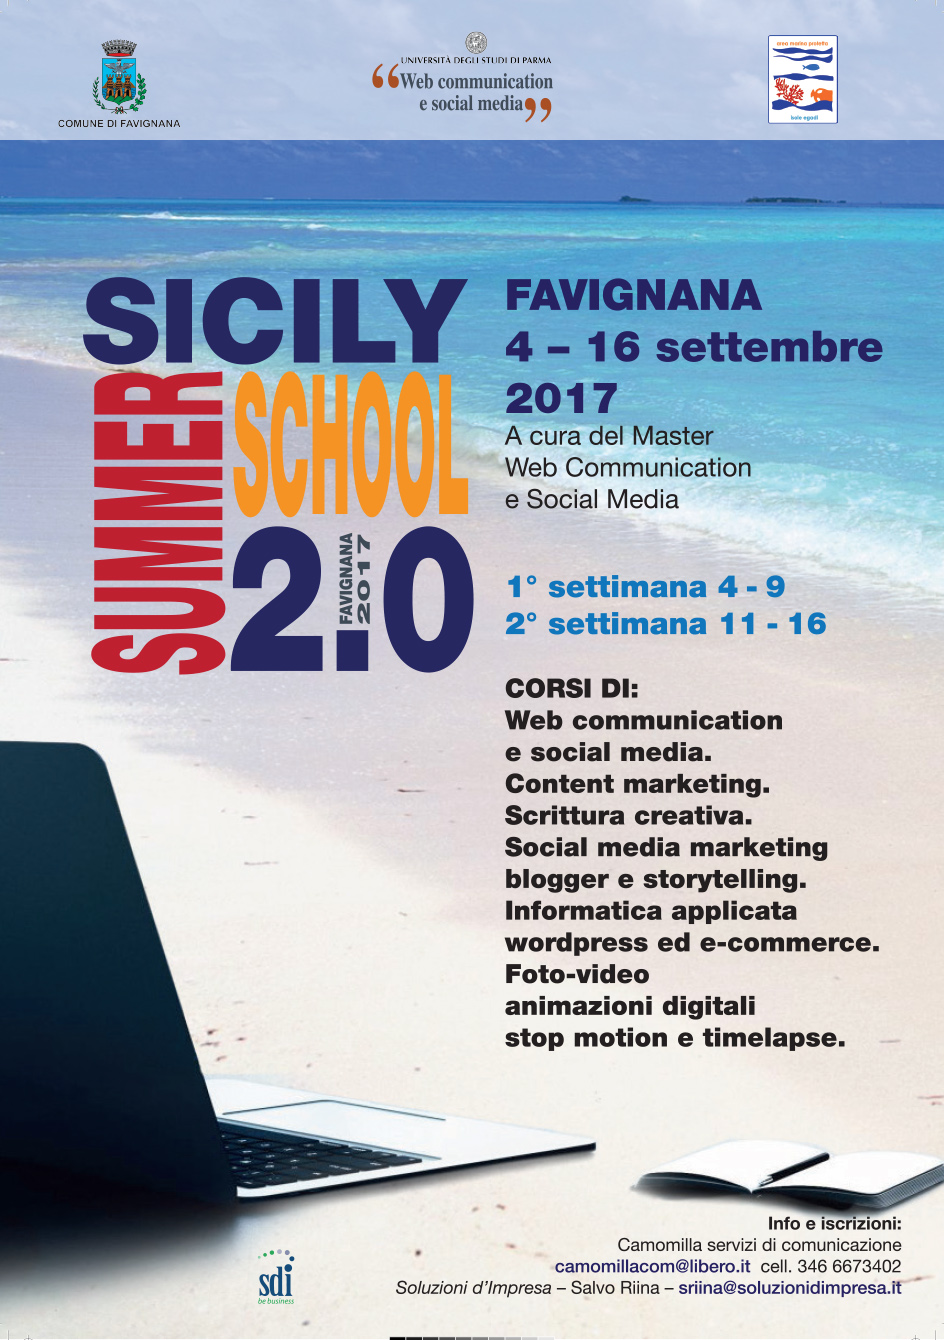 Sicily Summer School 2.0 – Web Media Master alle Egadi – 2017